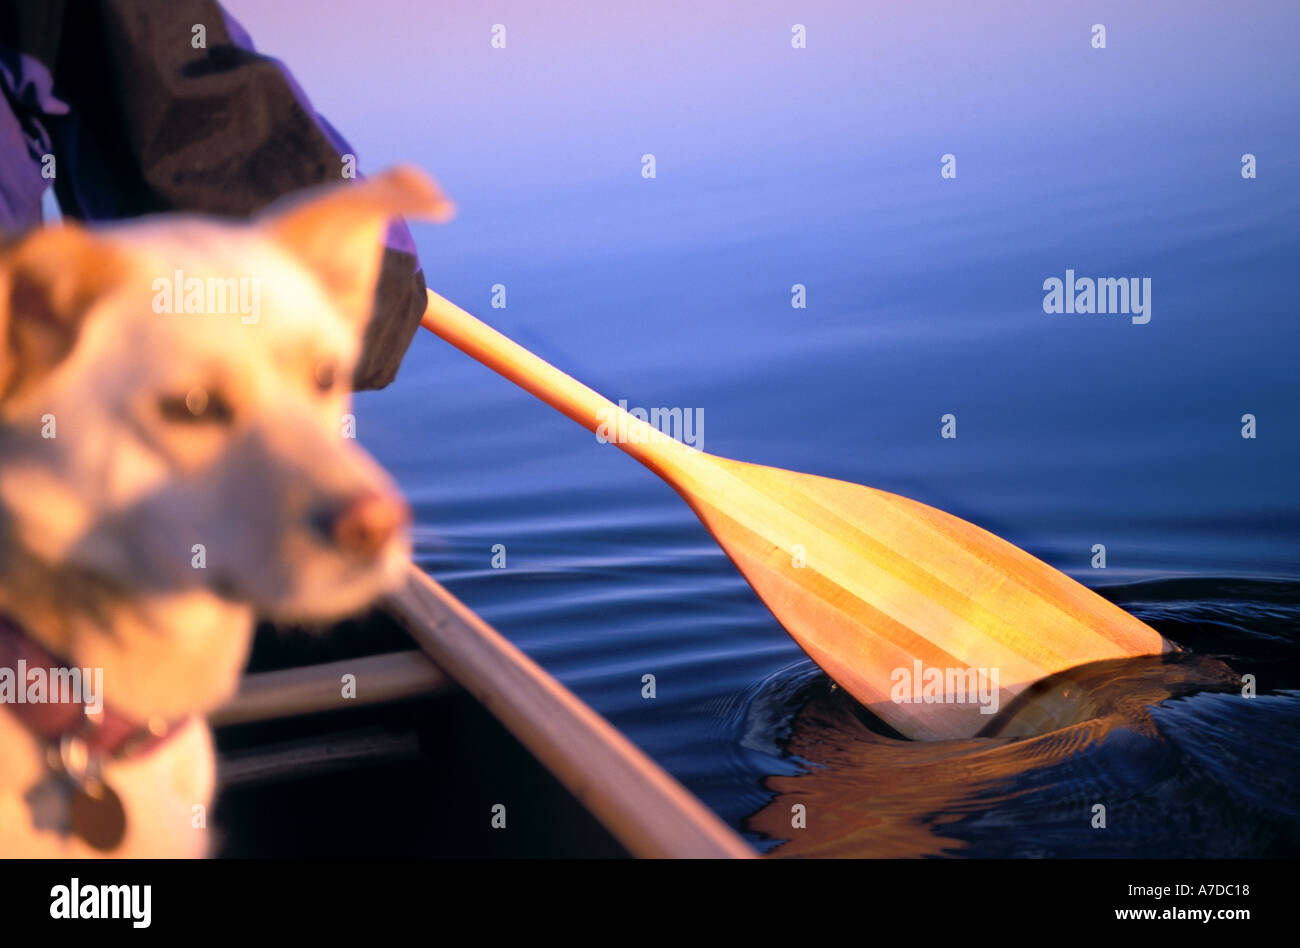 Dog in Wooden canoe with paddle MR - Stock Image